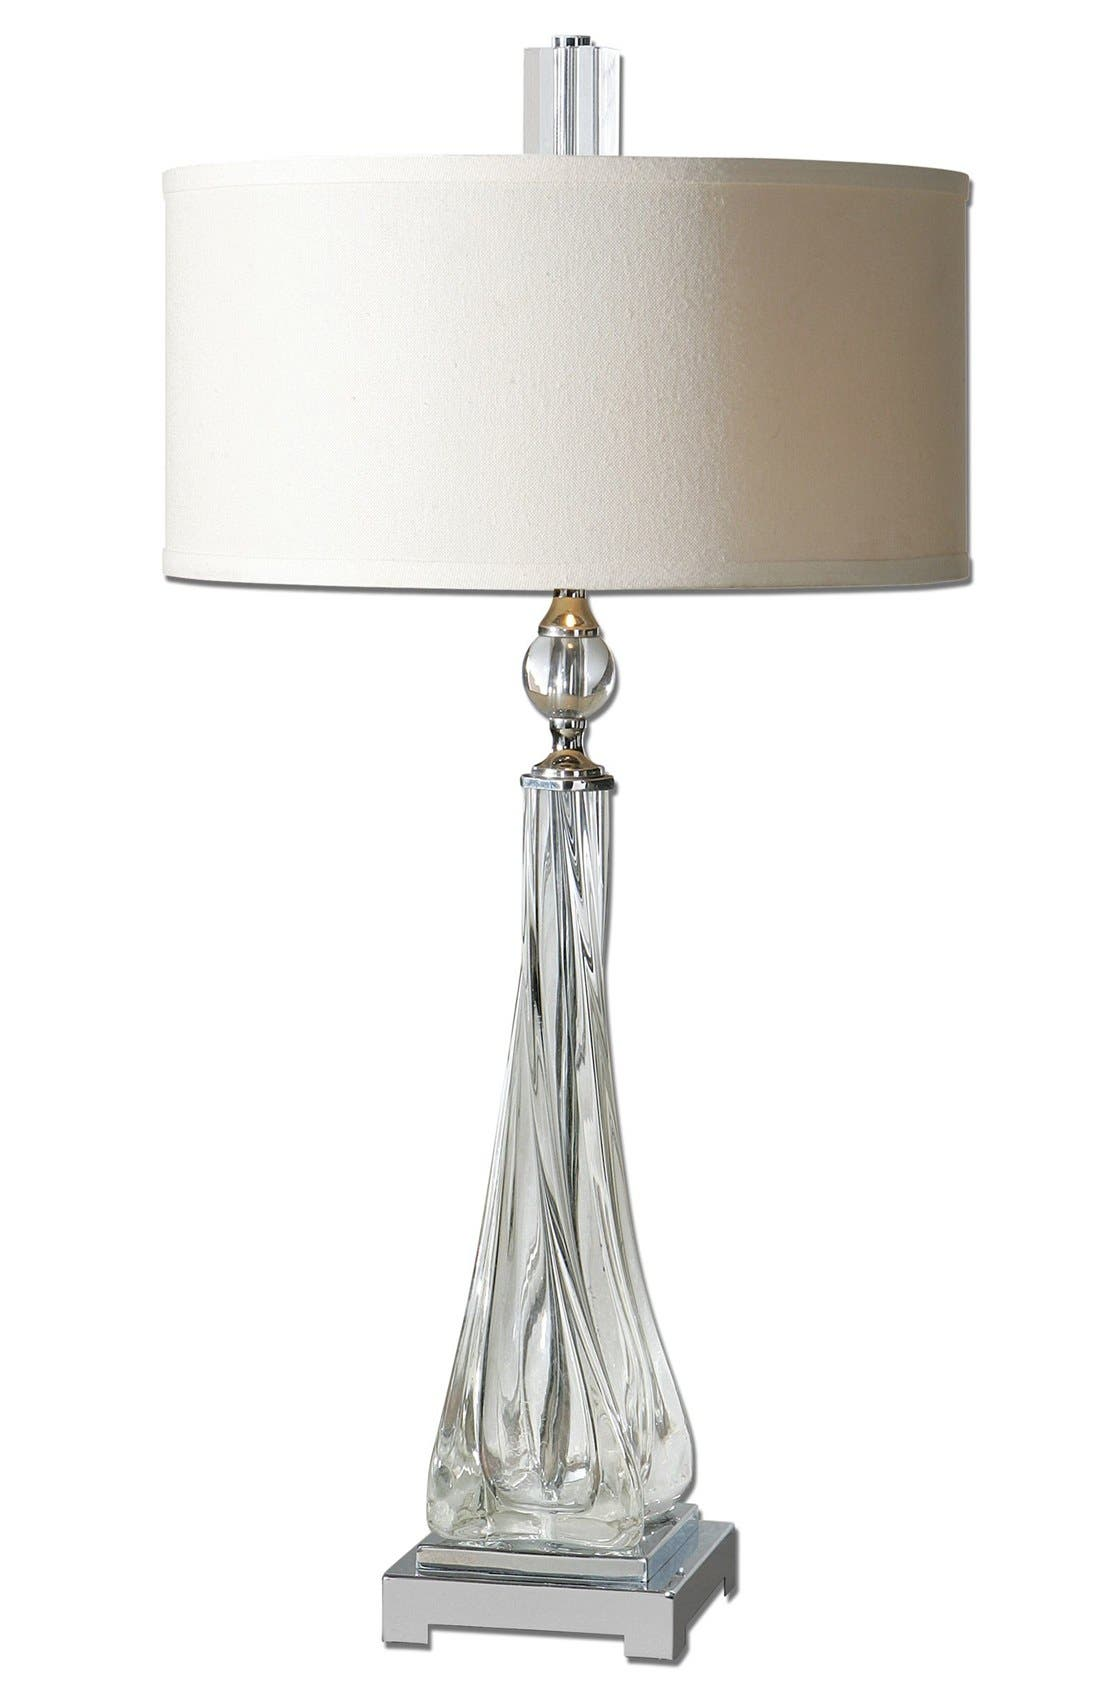 antique glass table lamp shades lamps amazon main image uttermost clear for bedroom